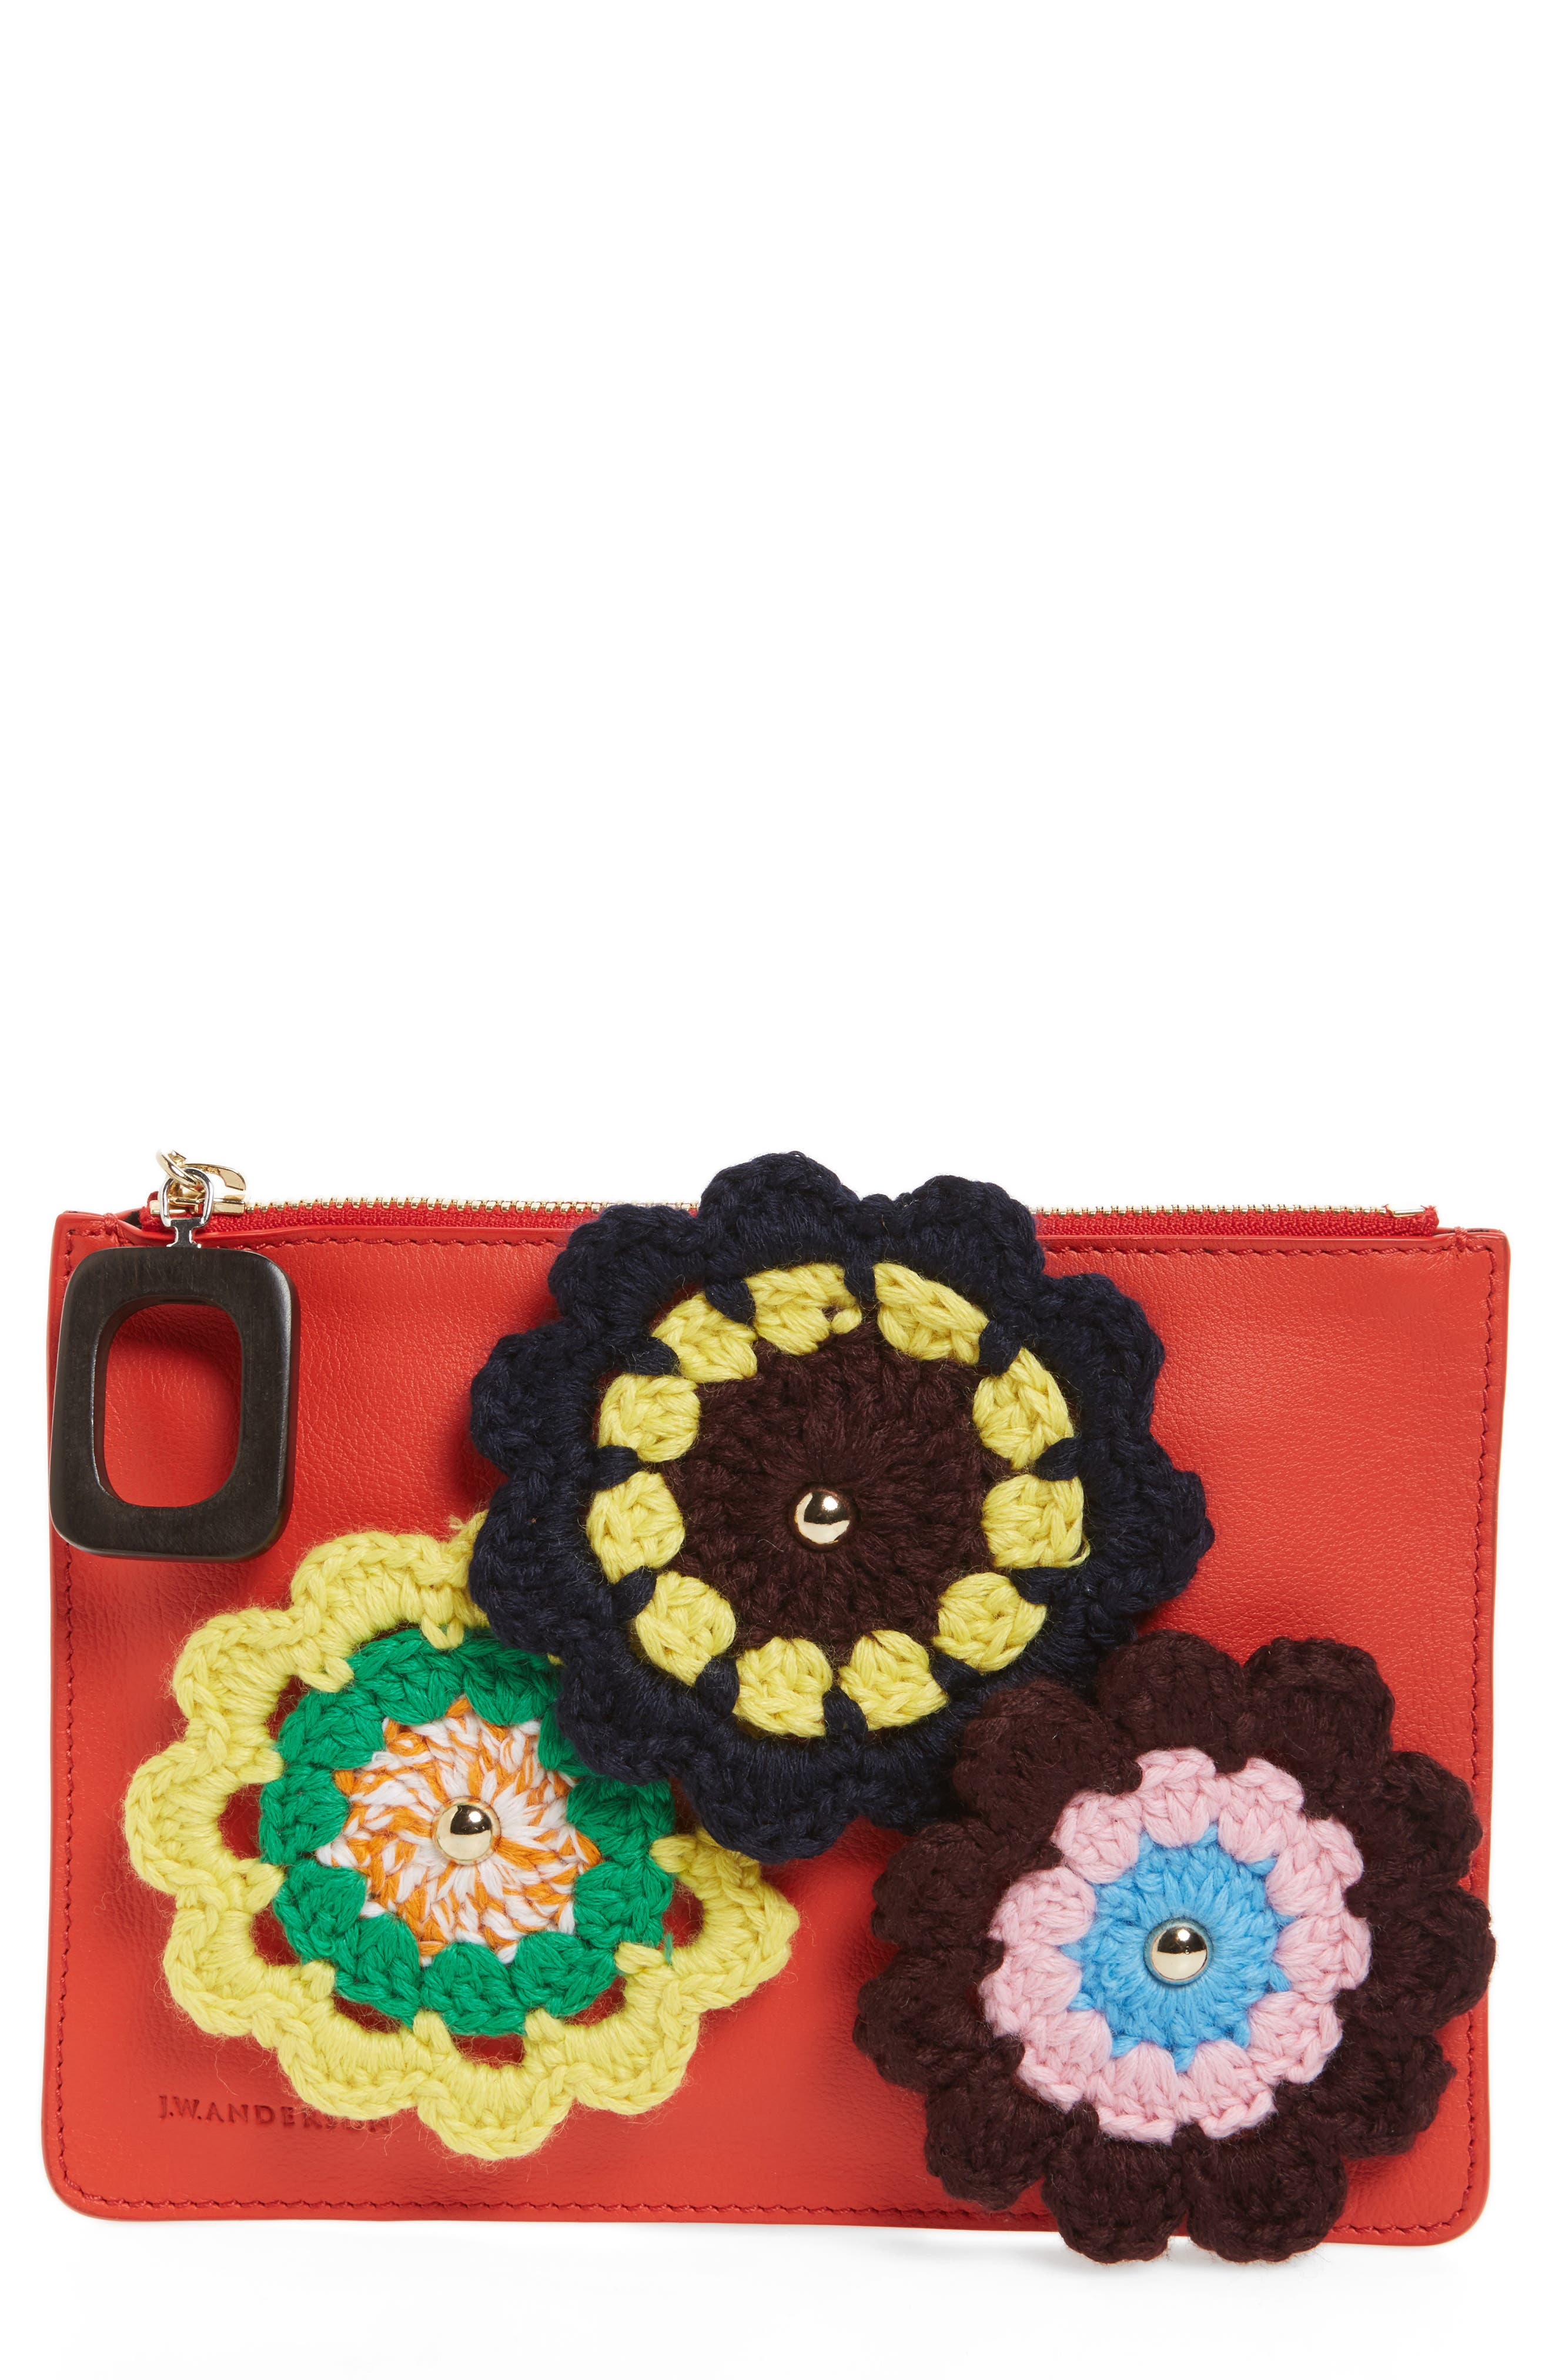 J.W.ANDERSON Daisies Calfskin Leather Pouch,                             Main thumbnail 1, color,                             600